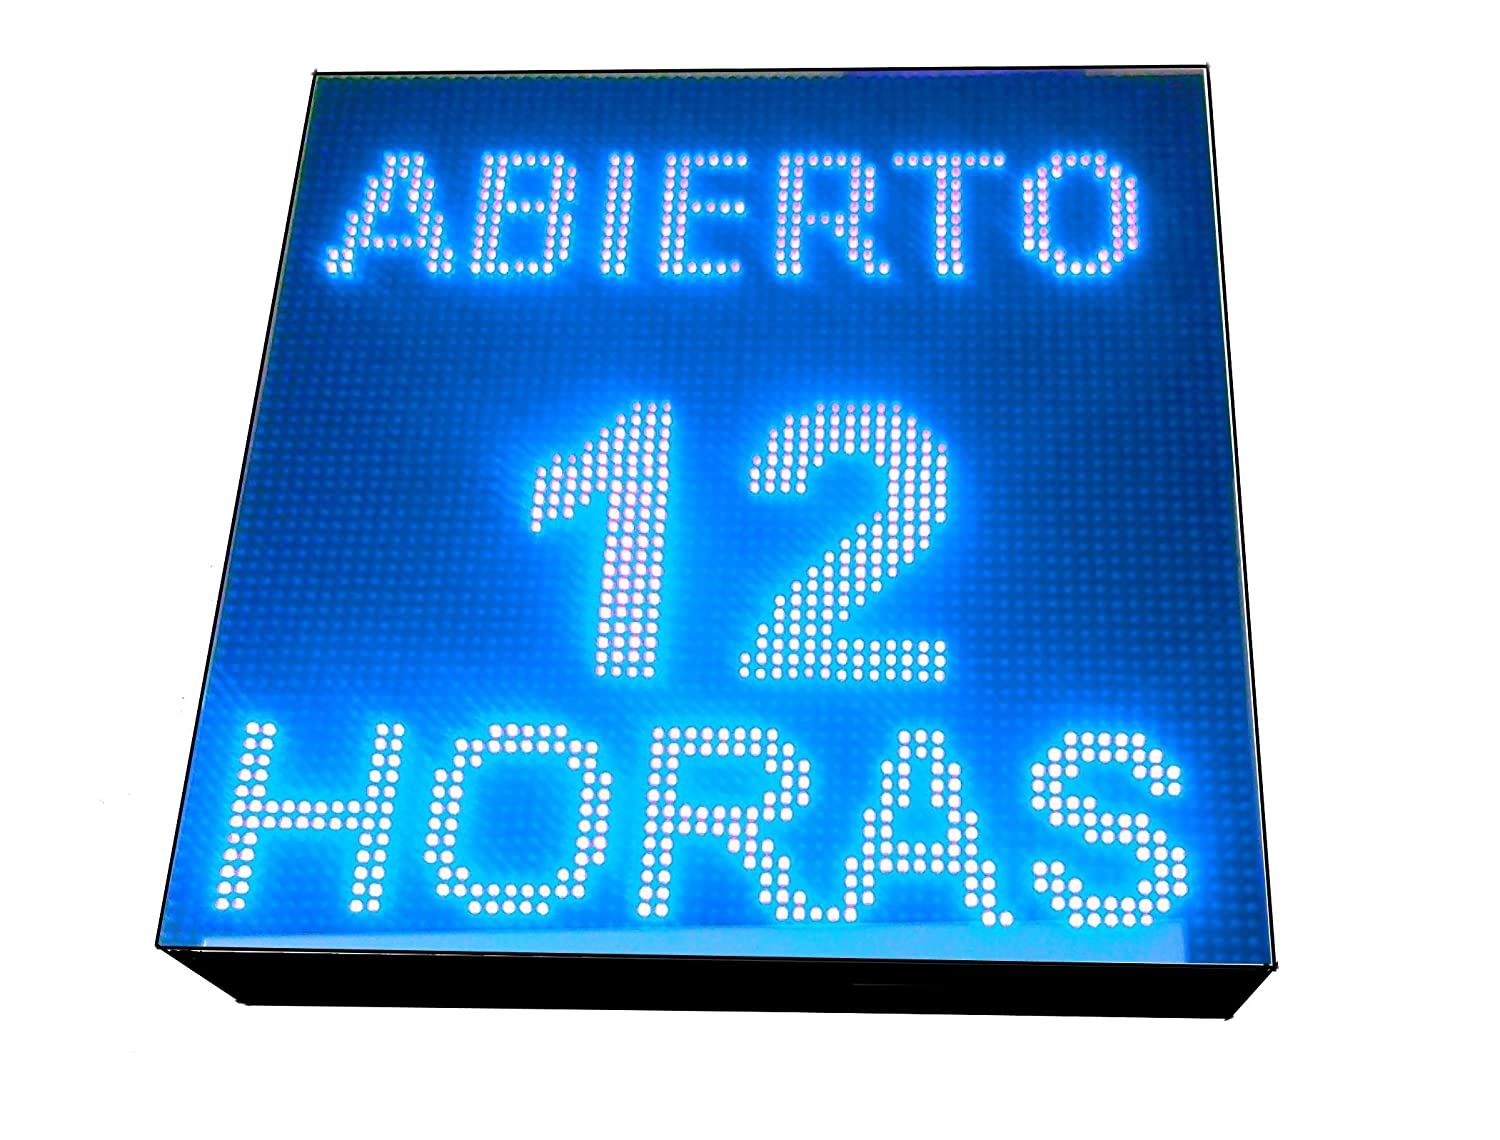 CARTEL LED PROGRAMABLE LETRERO LED PROGRAMABLE PANTALLA LED PROGRAMABLE (64 * 64 cm, AZUL) ROTULO LED PROGRAMABLE CARTEL ELECTRÓNICO ANUNCIA TU ...